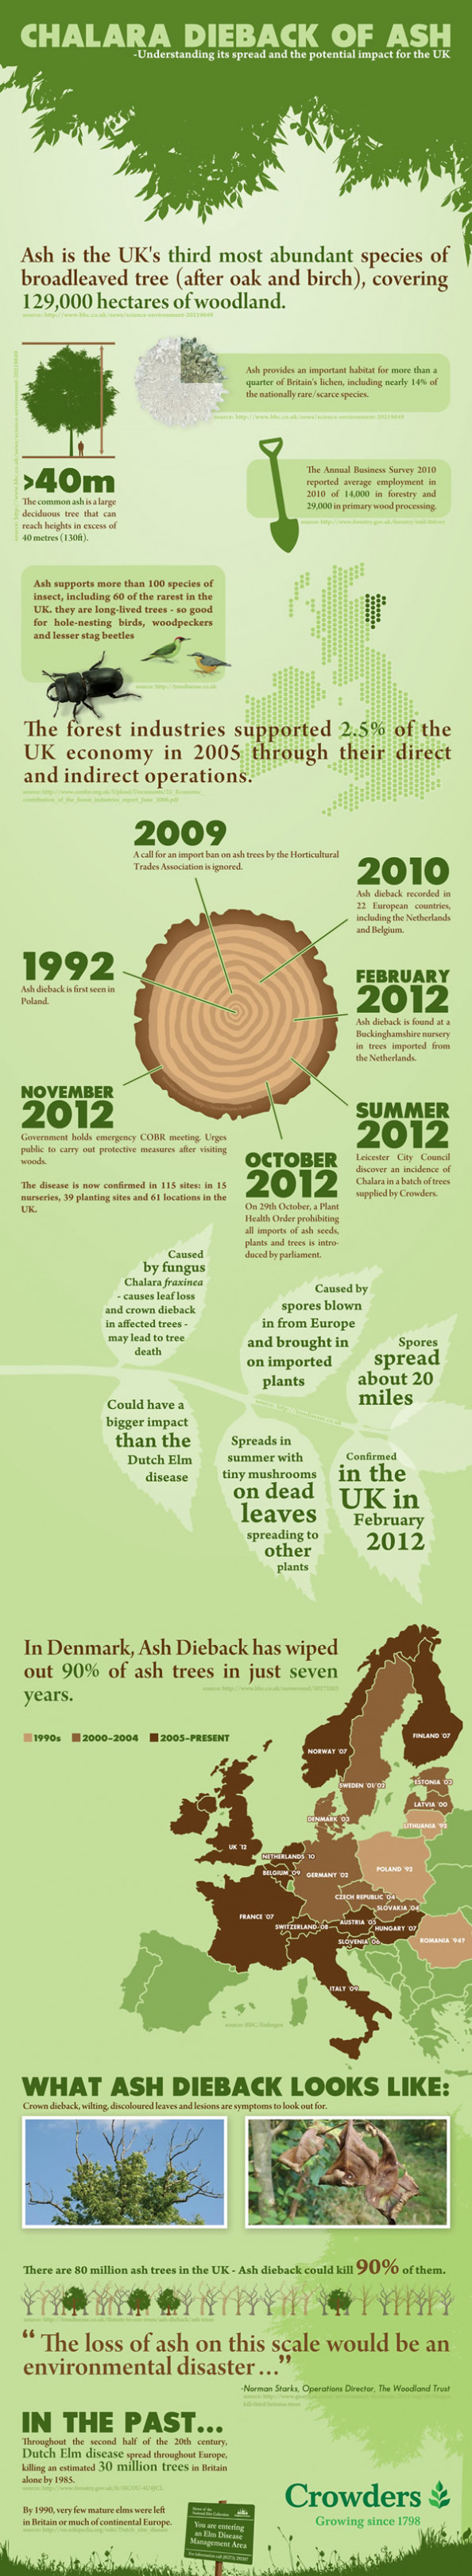 The devastation caused by Ash Dieback disease Infographic